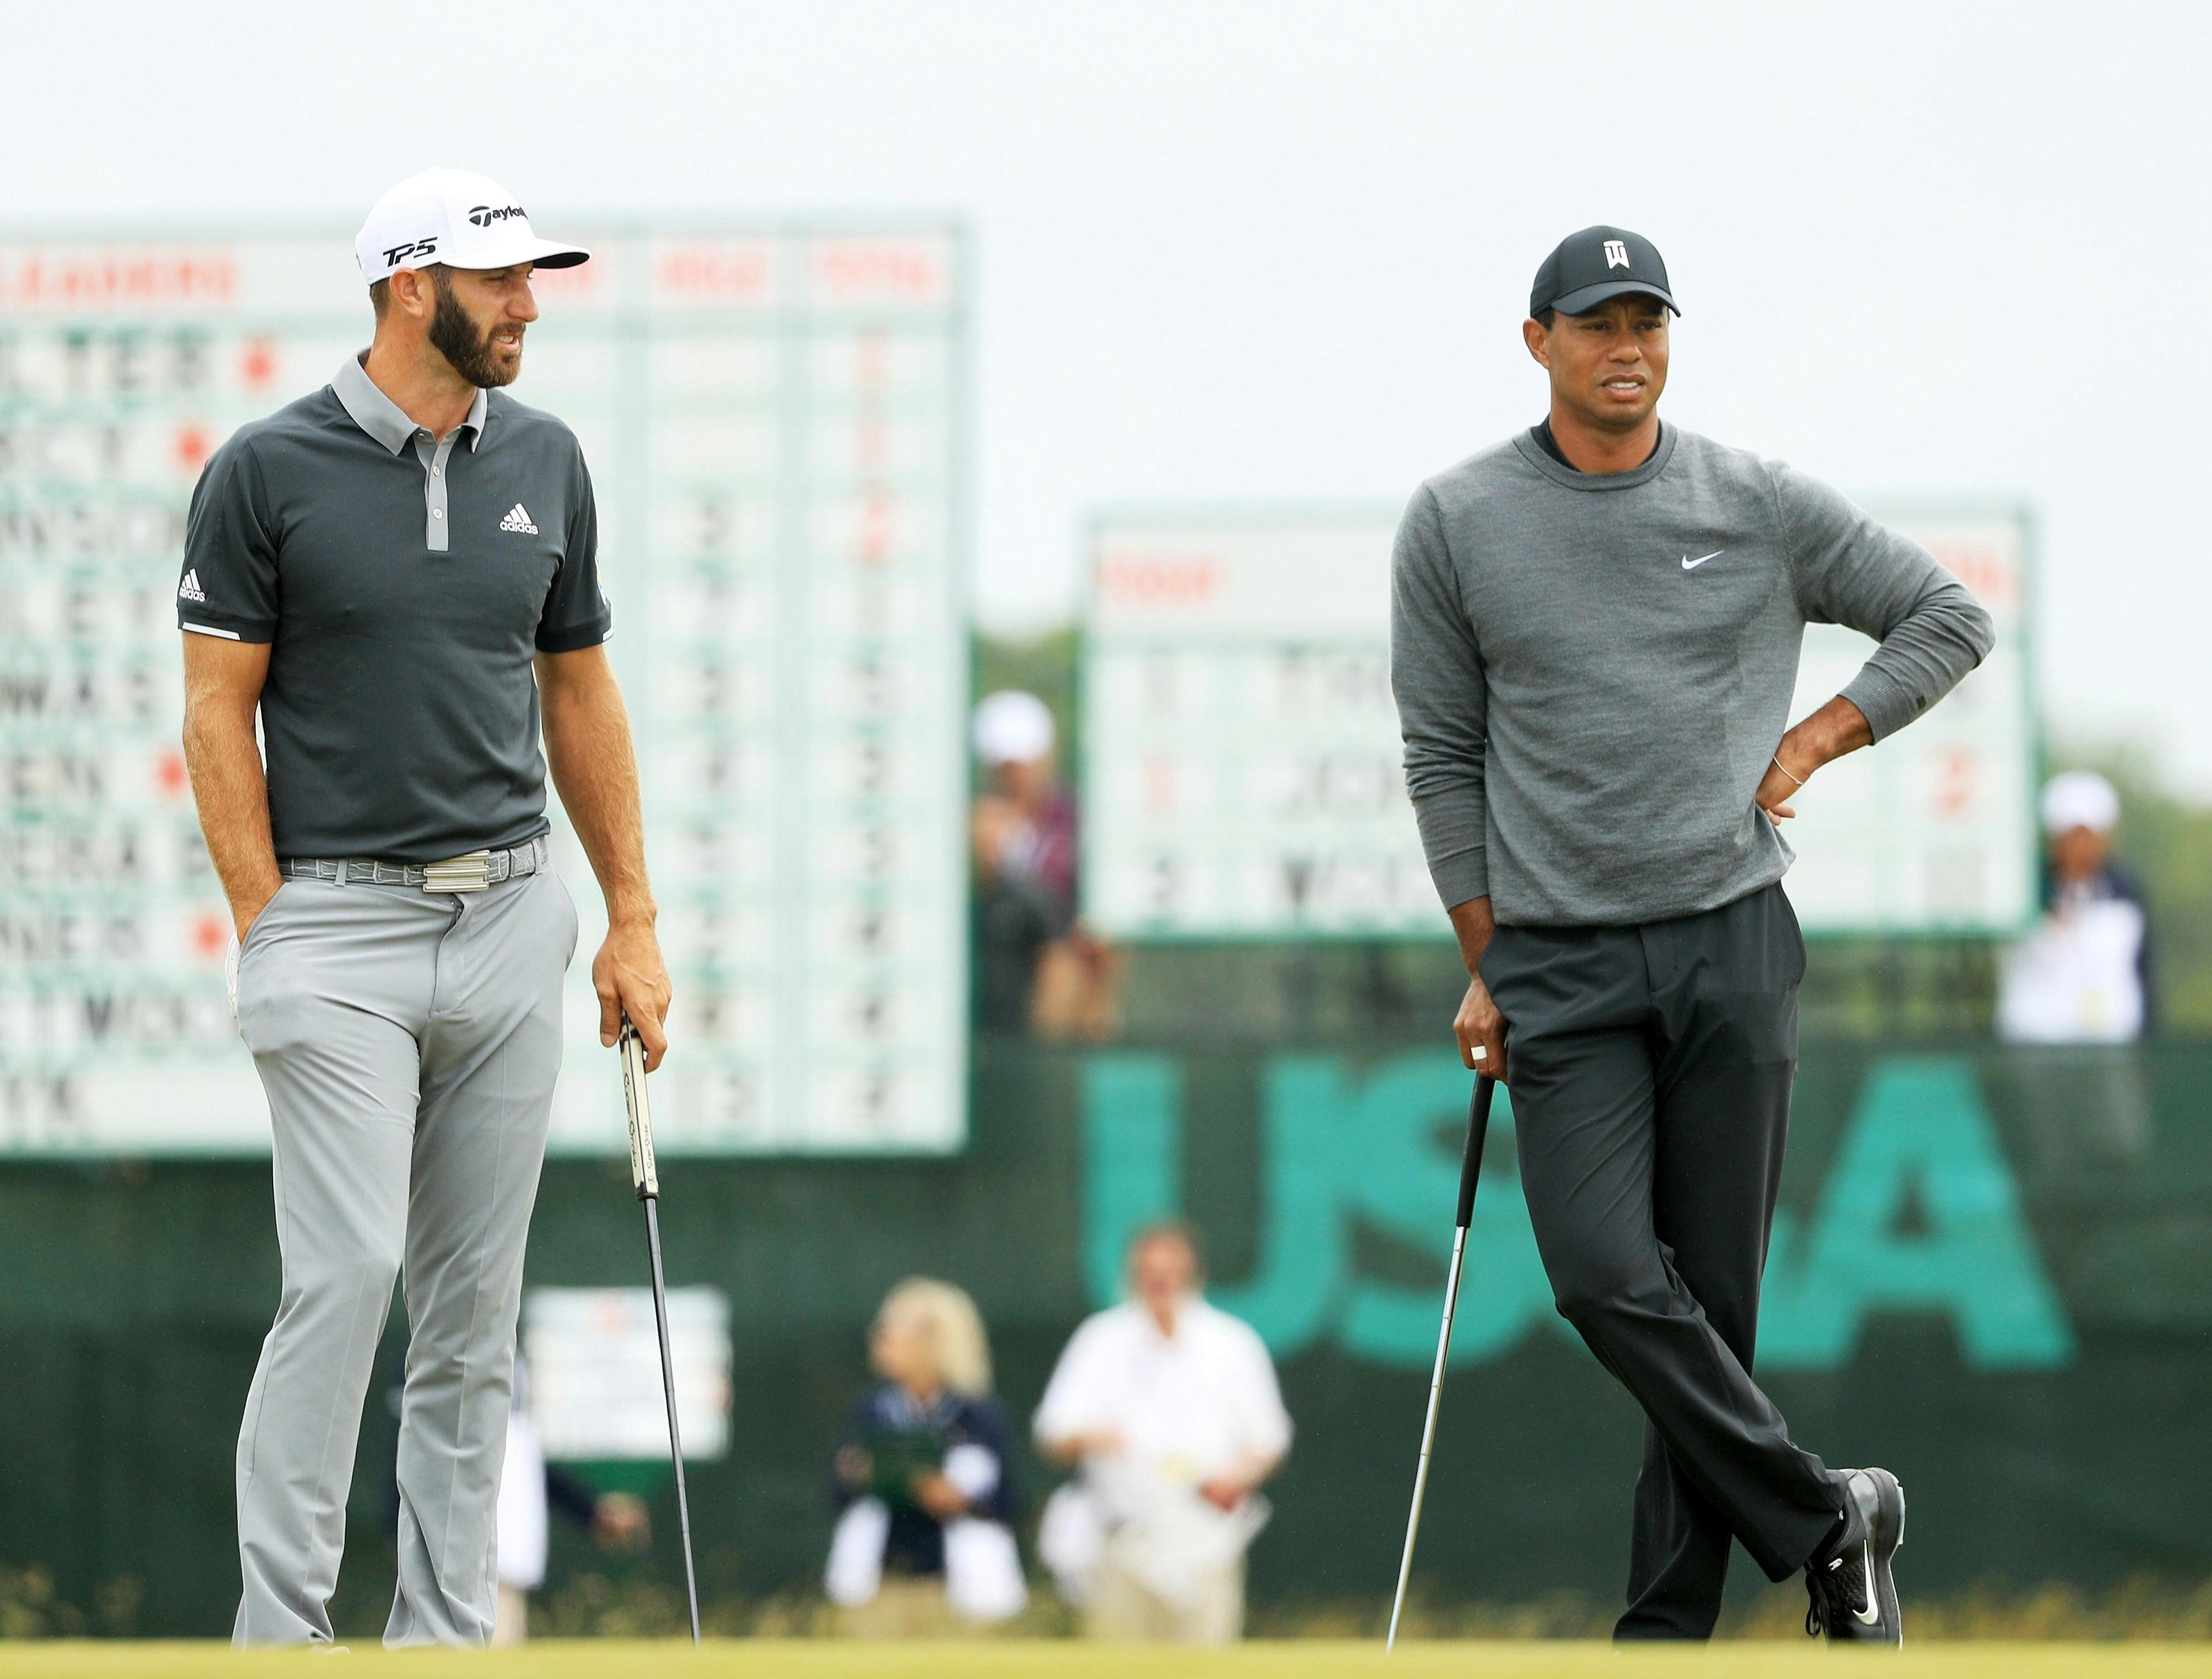 Tiger Woods and his playing partner Dustin Johnson couldn't have had much different luck out there on the course